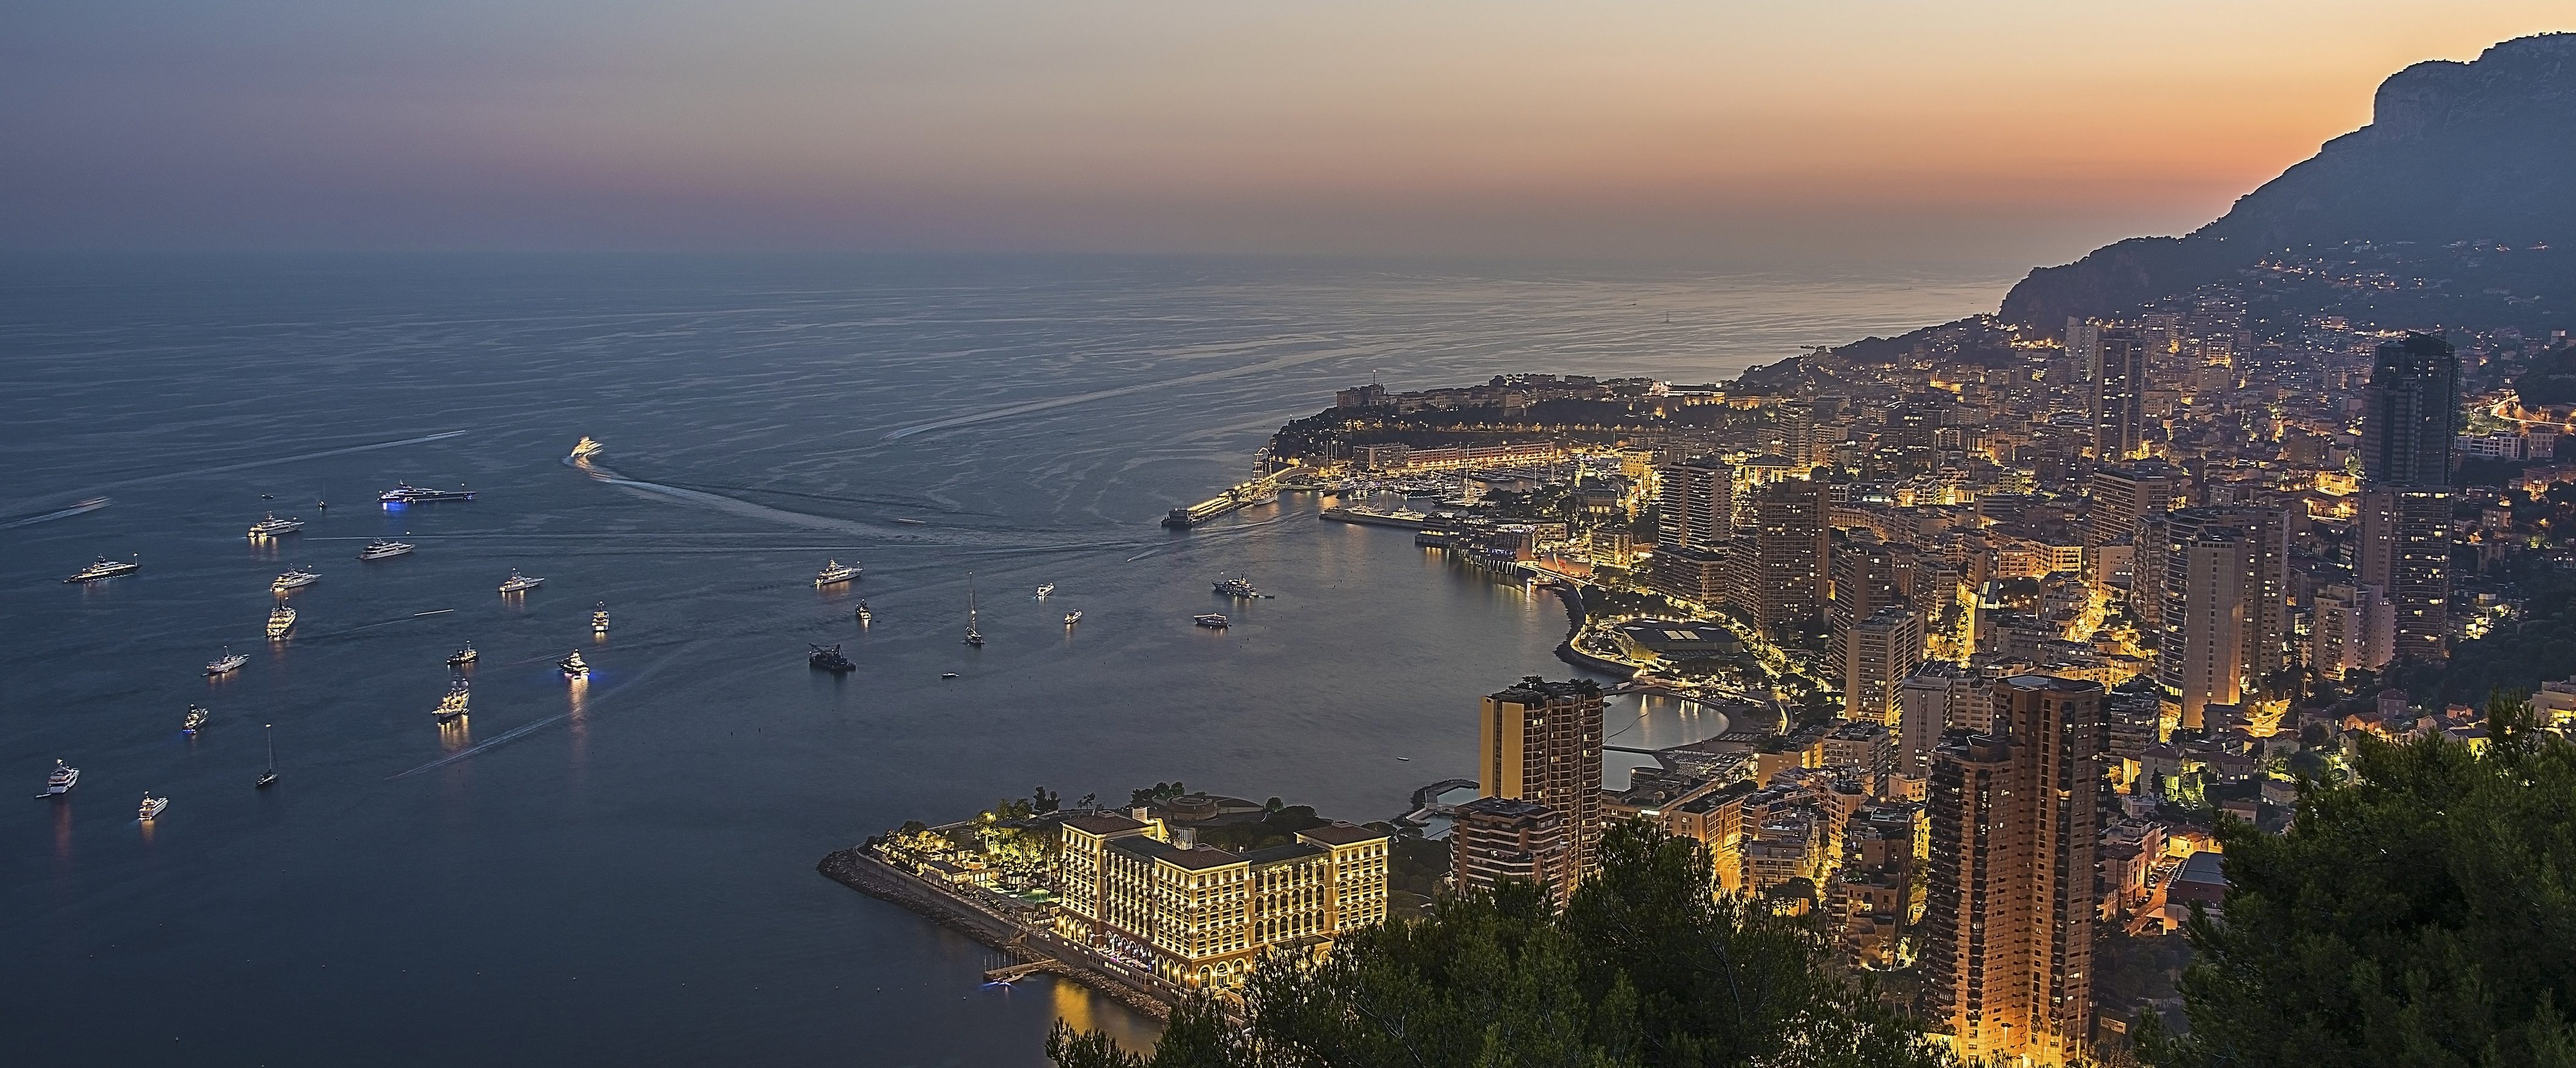 Carioca Outpost: The French Riviera